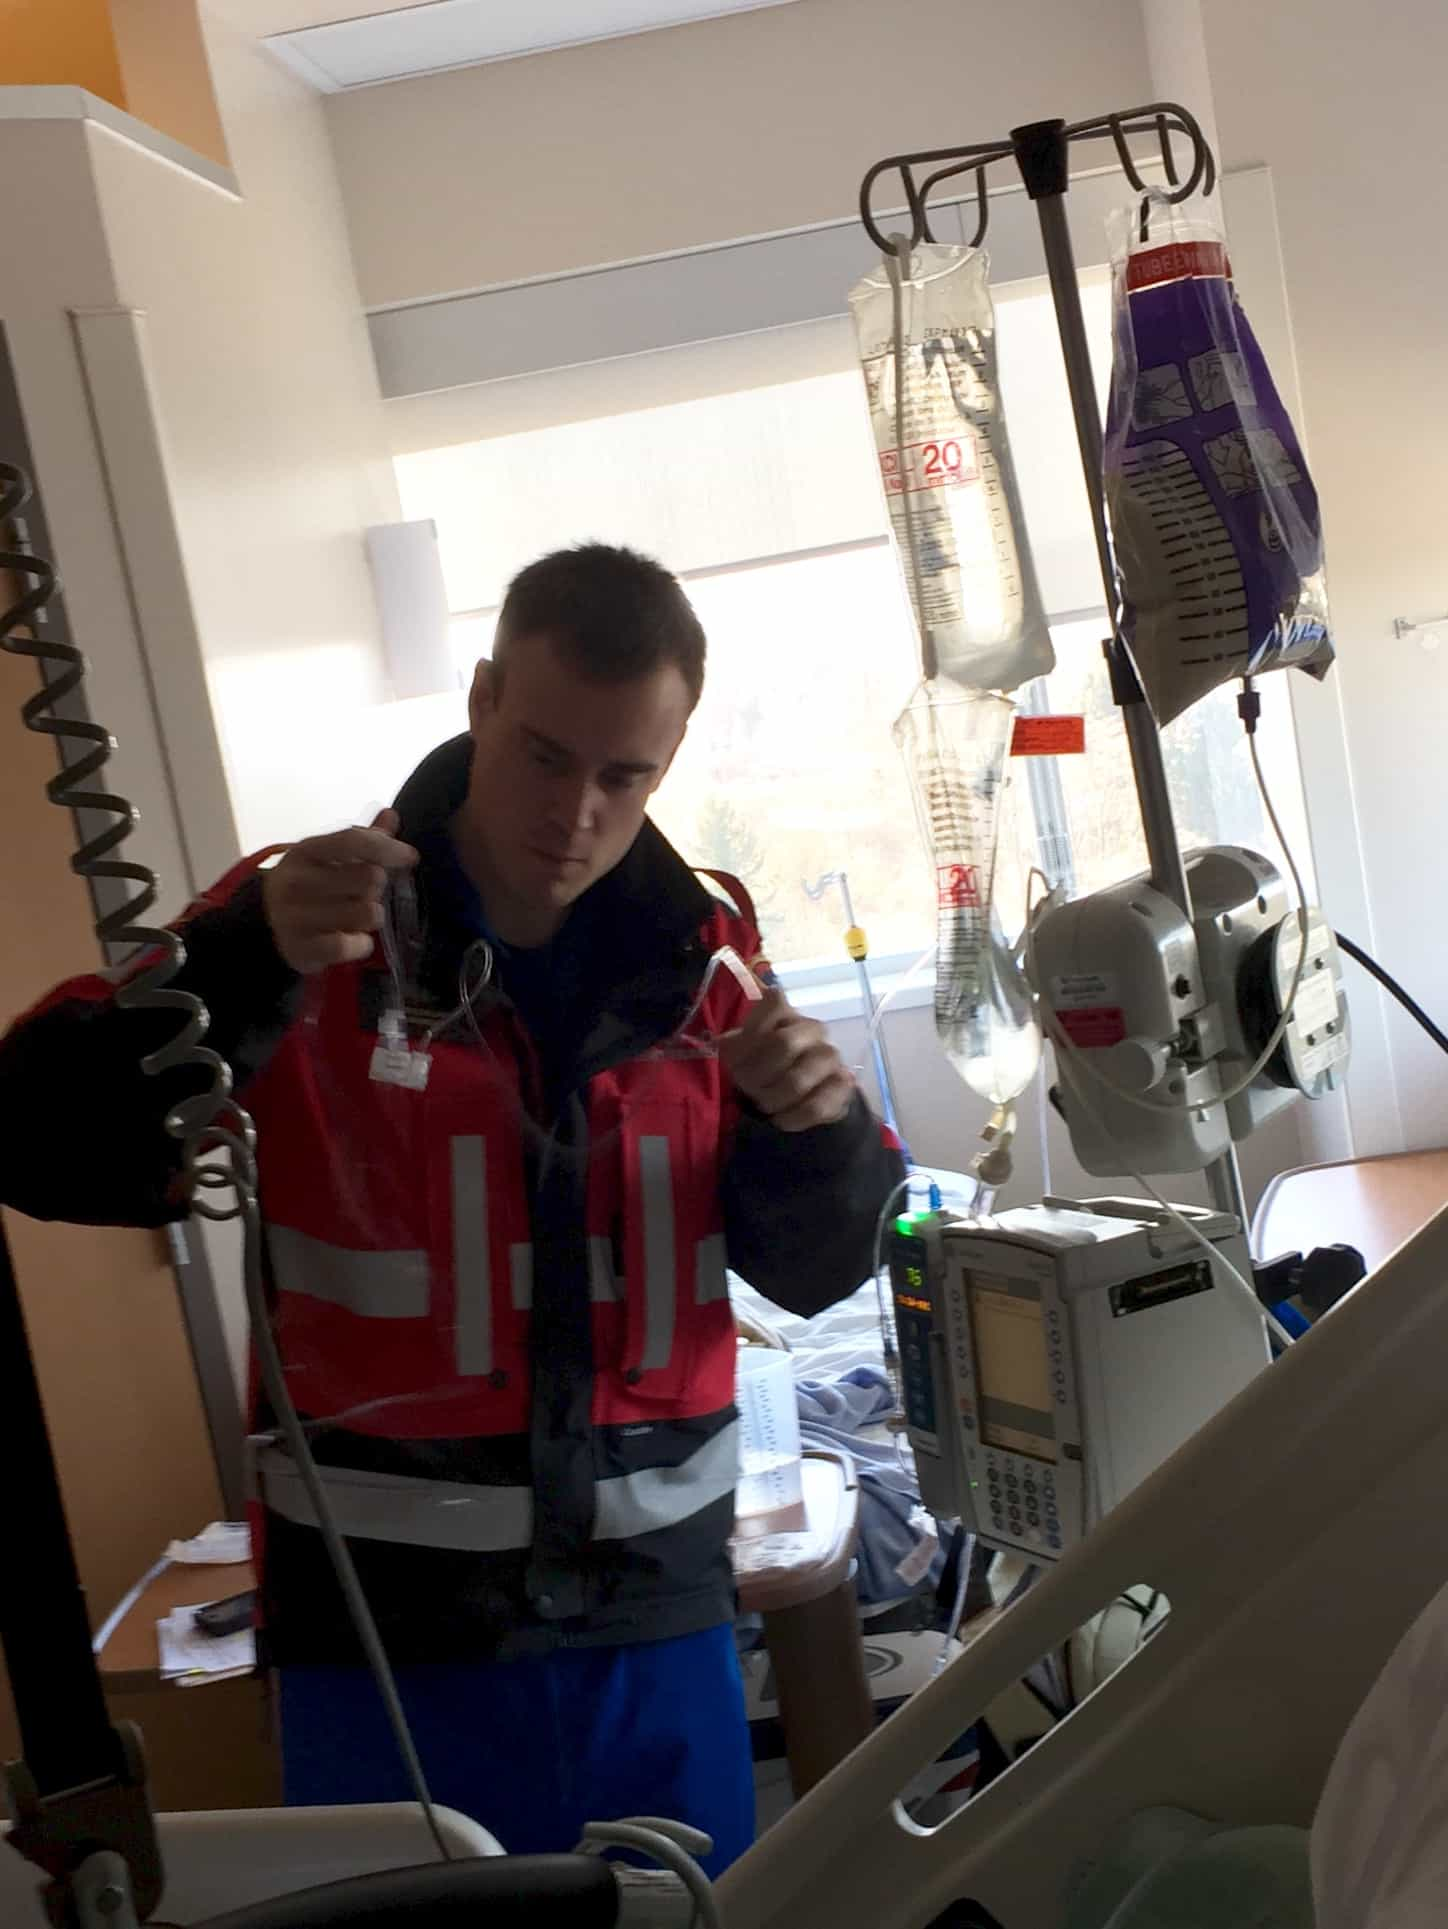 Paramedic with medical equipment